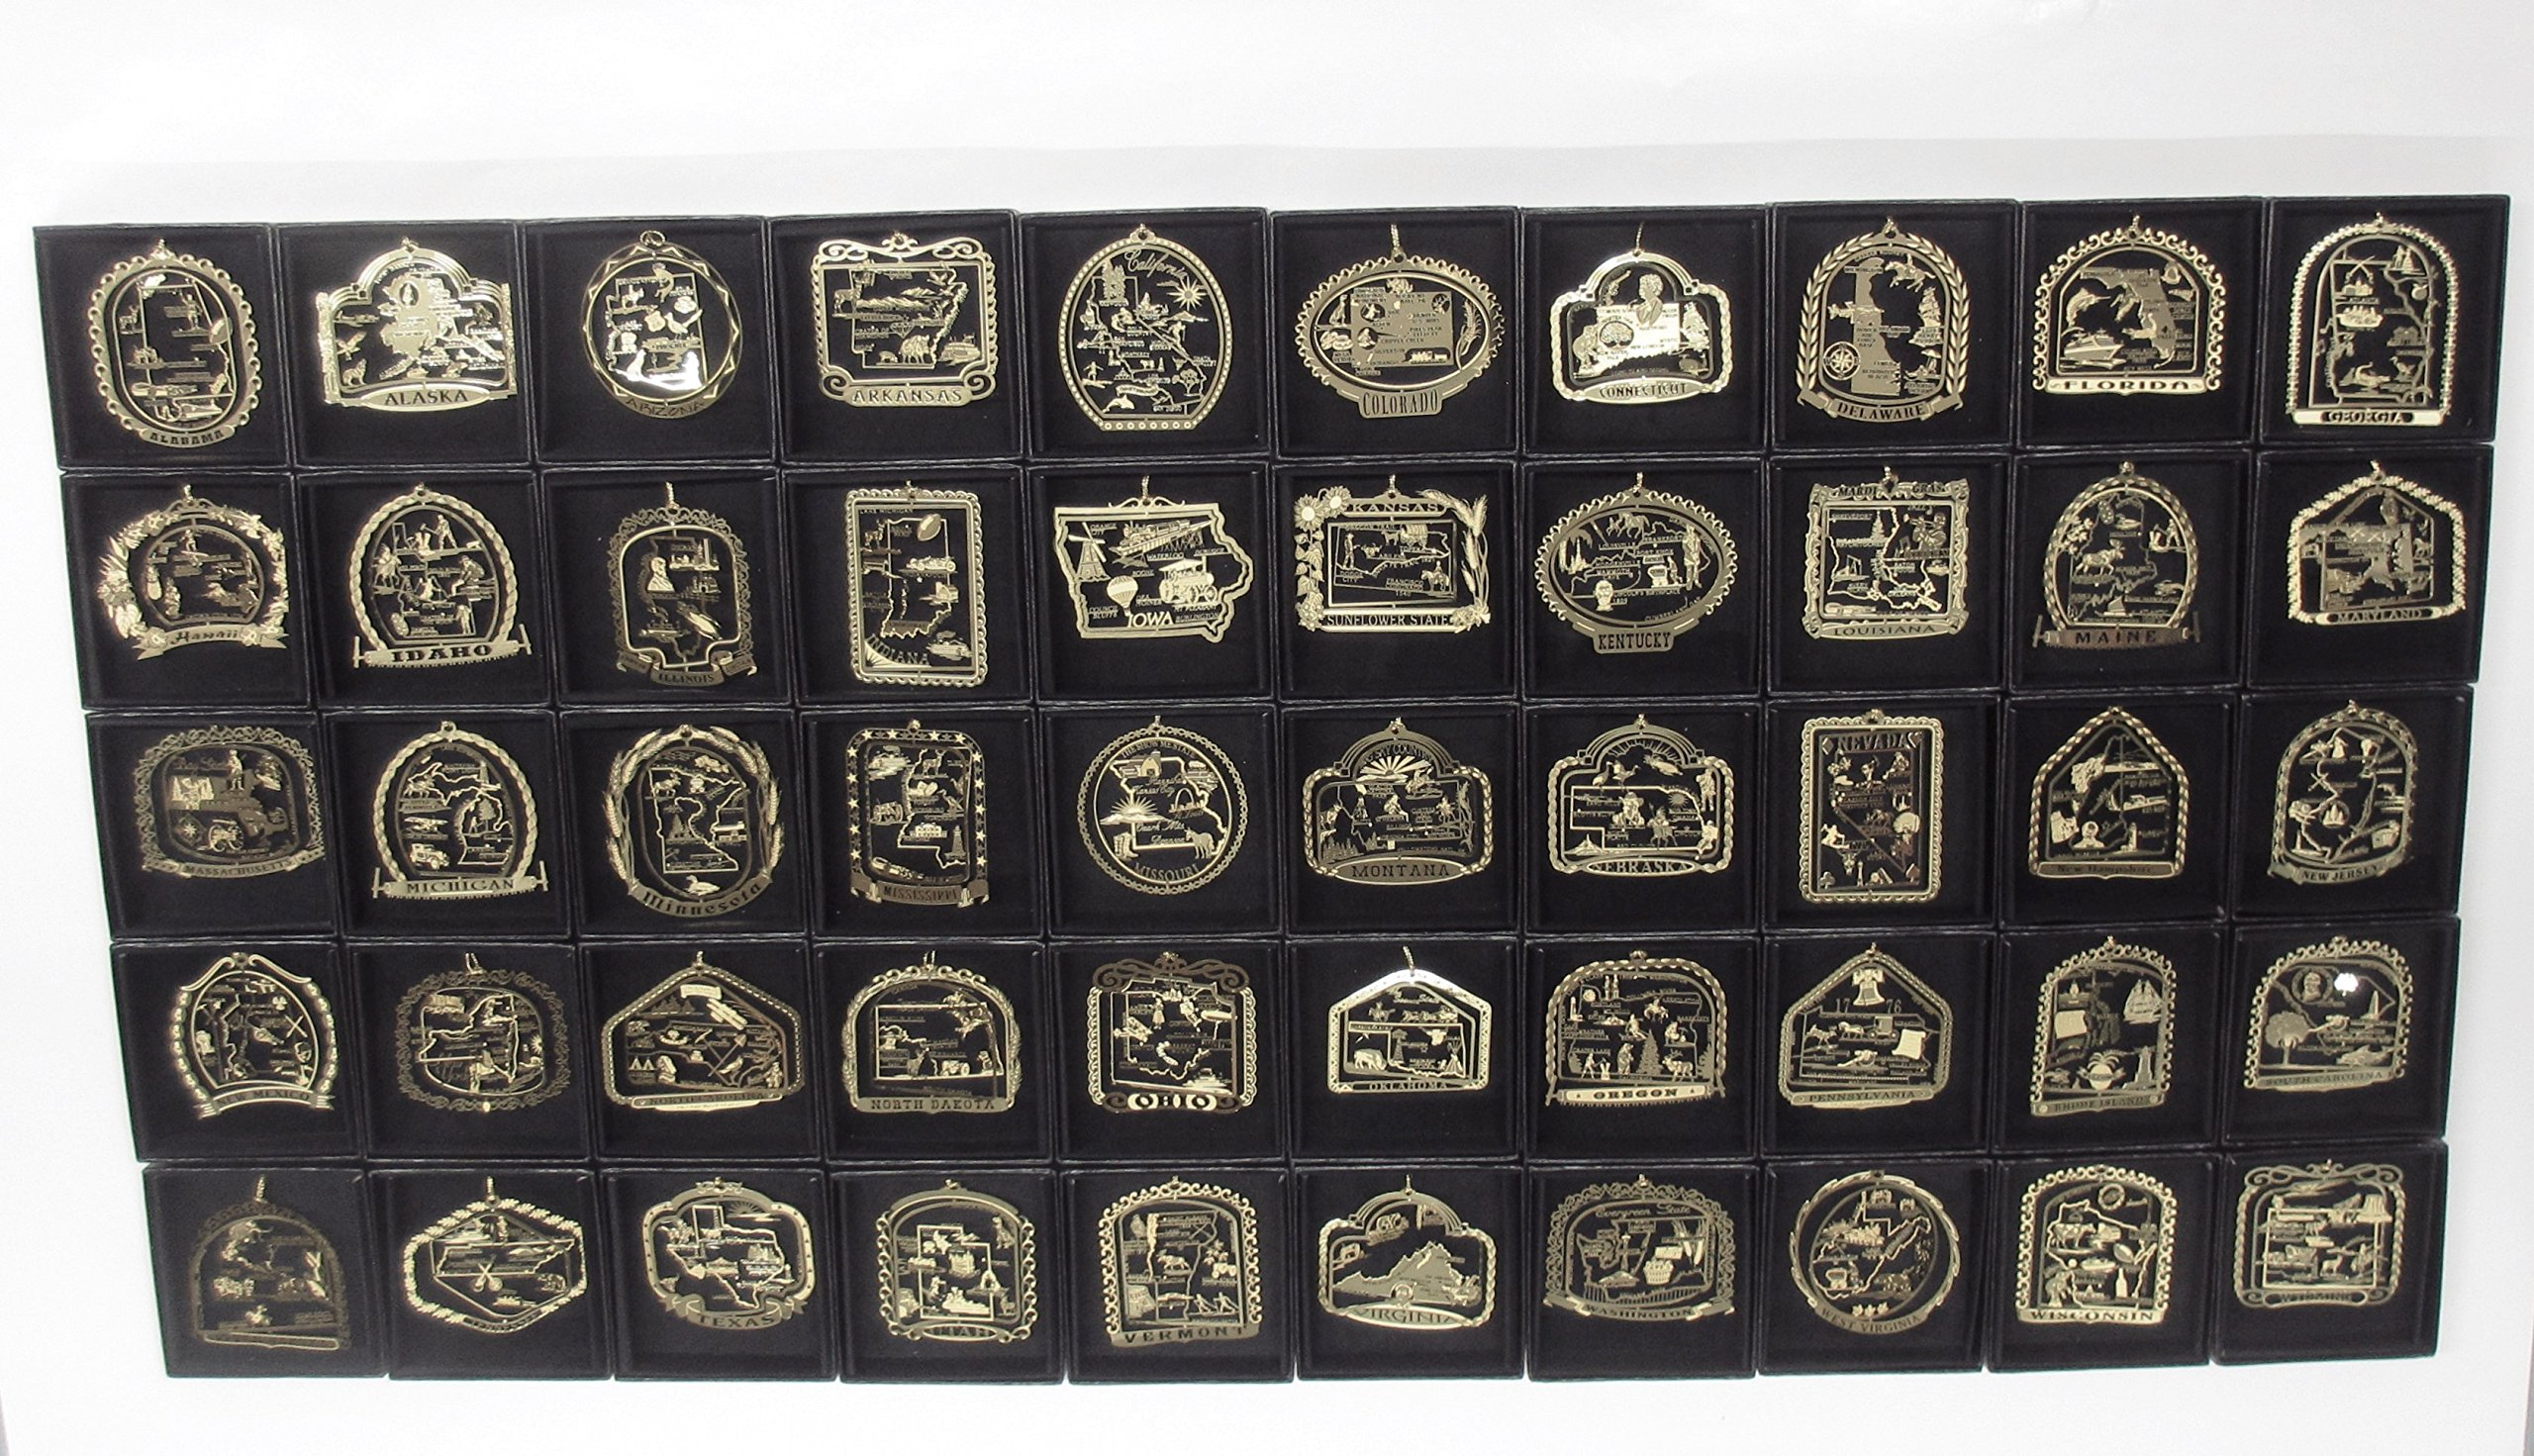 50 USA Ornaments State Landmarks Brass Christmas Black Leatherette Gift Box by I Love My State